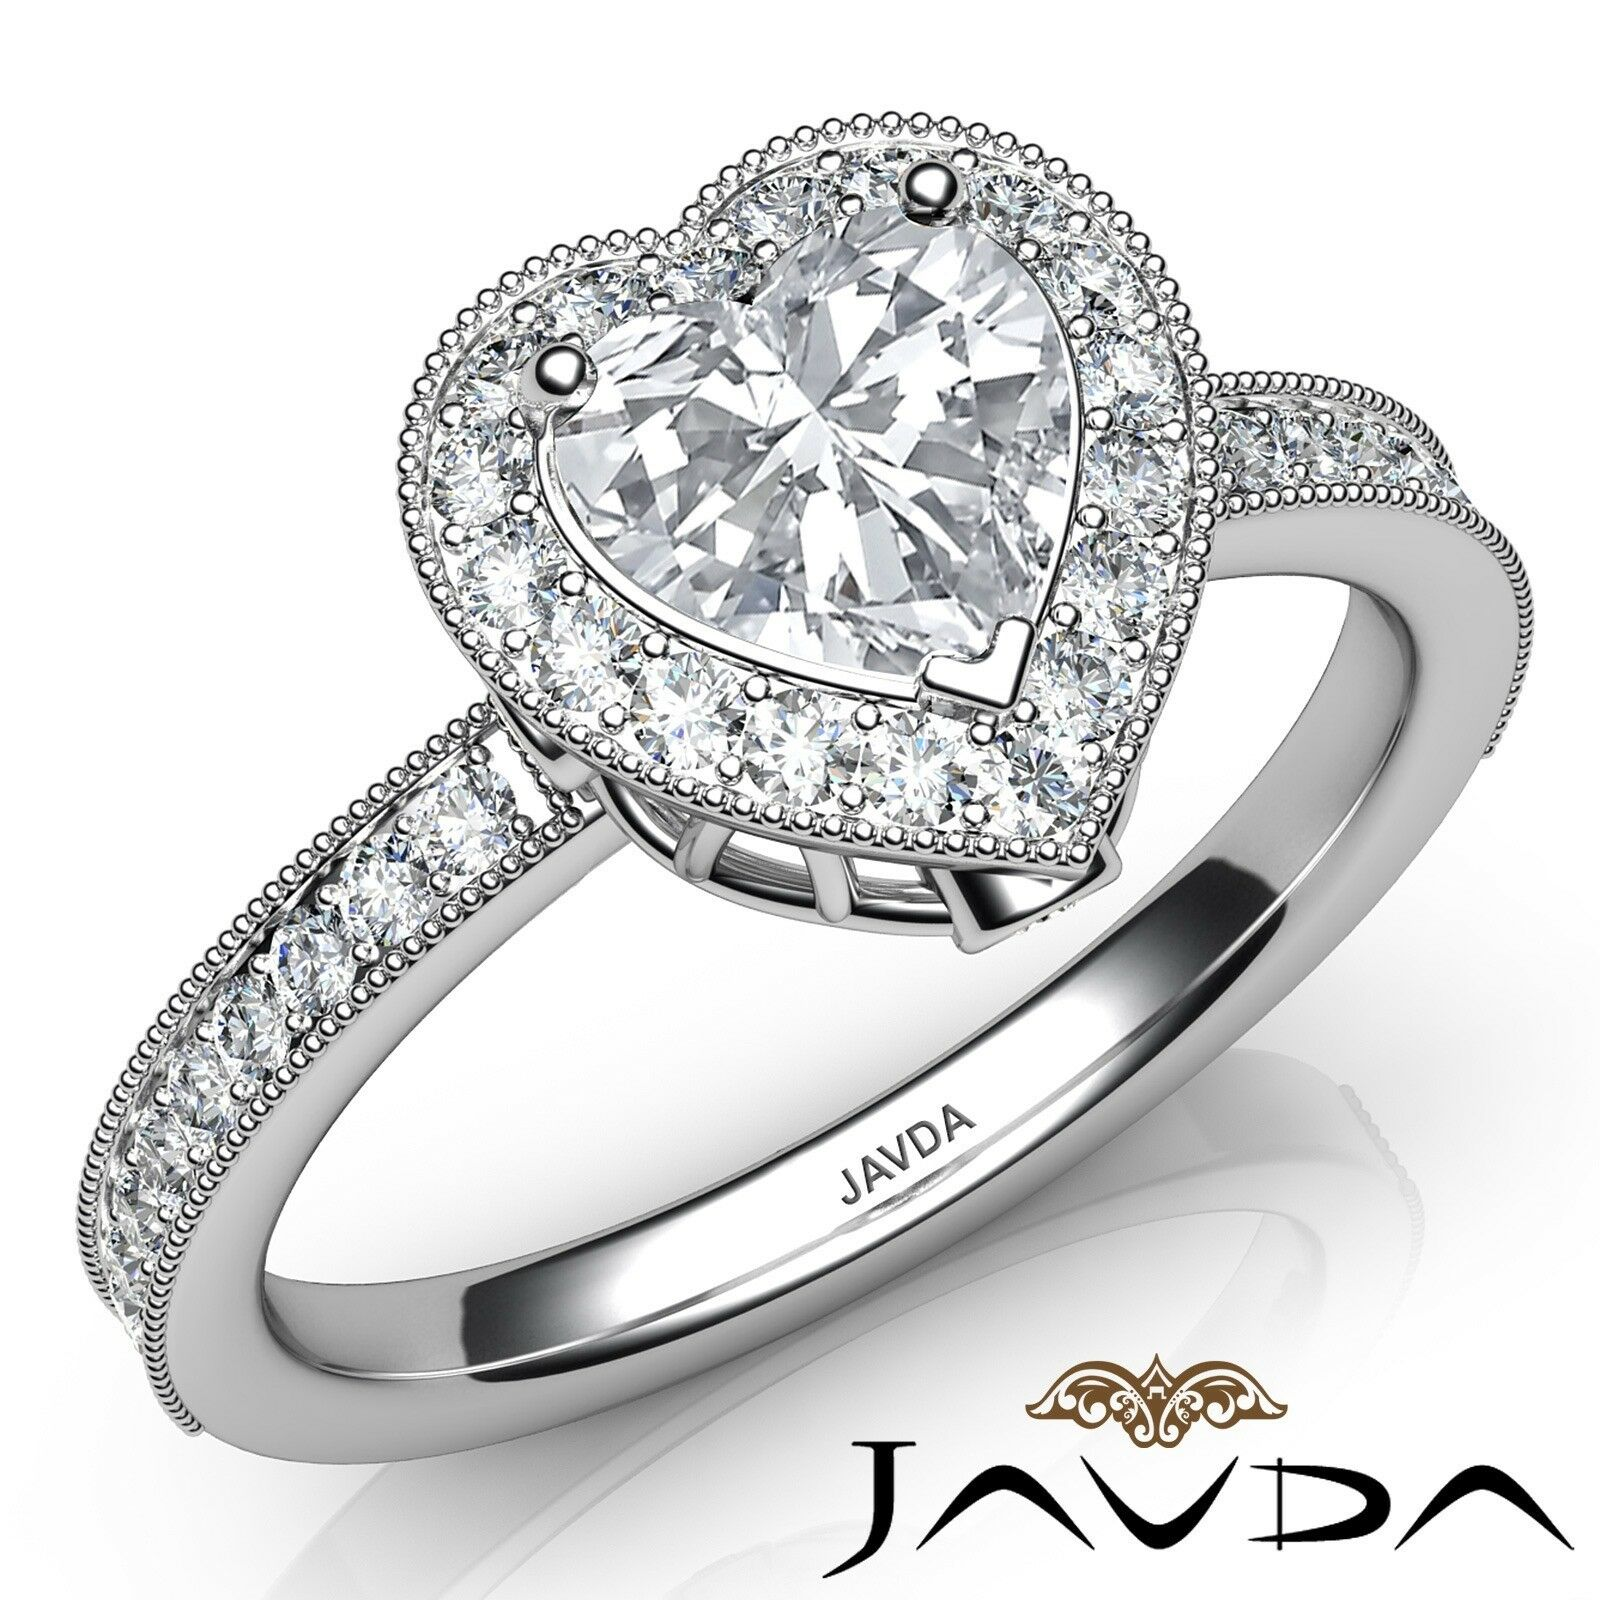 1.64ctw Milgrain Halo Bezel Setting Heart Diamond Engagement Ring GIA J-SI1 Gold